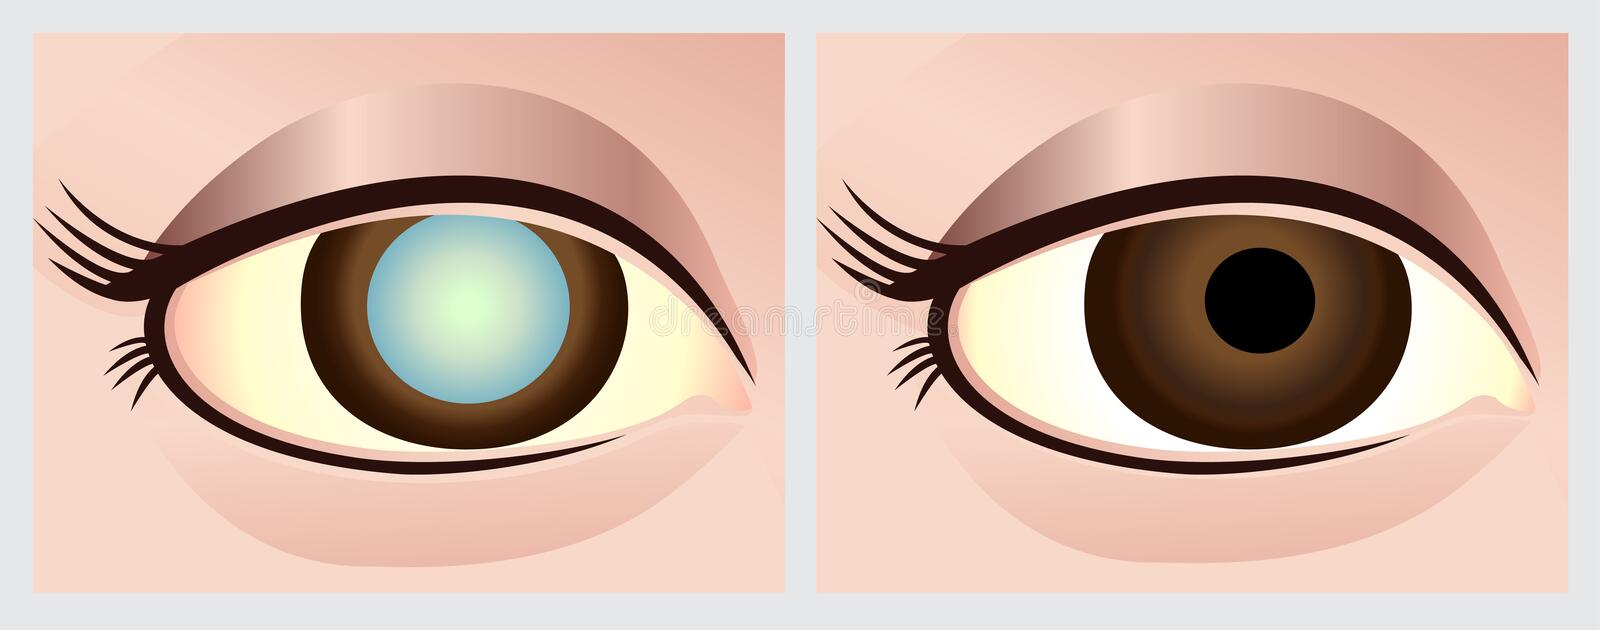 Download Cataract eye stock illustration. Image of clouded, patient - 33642464